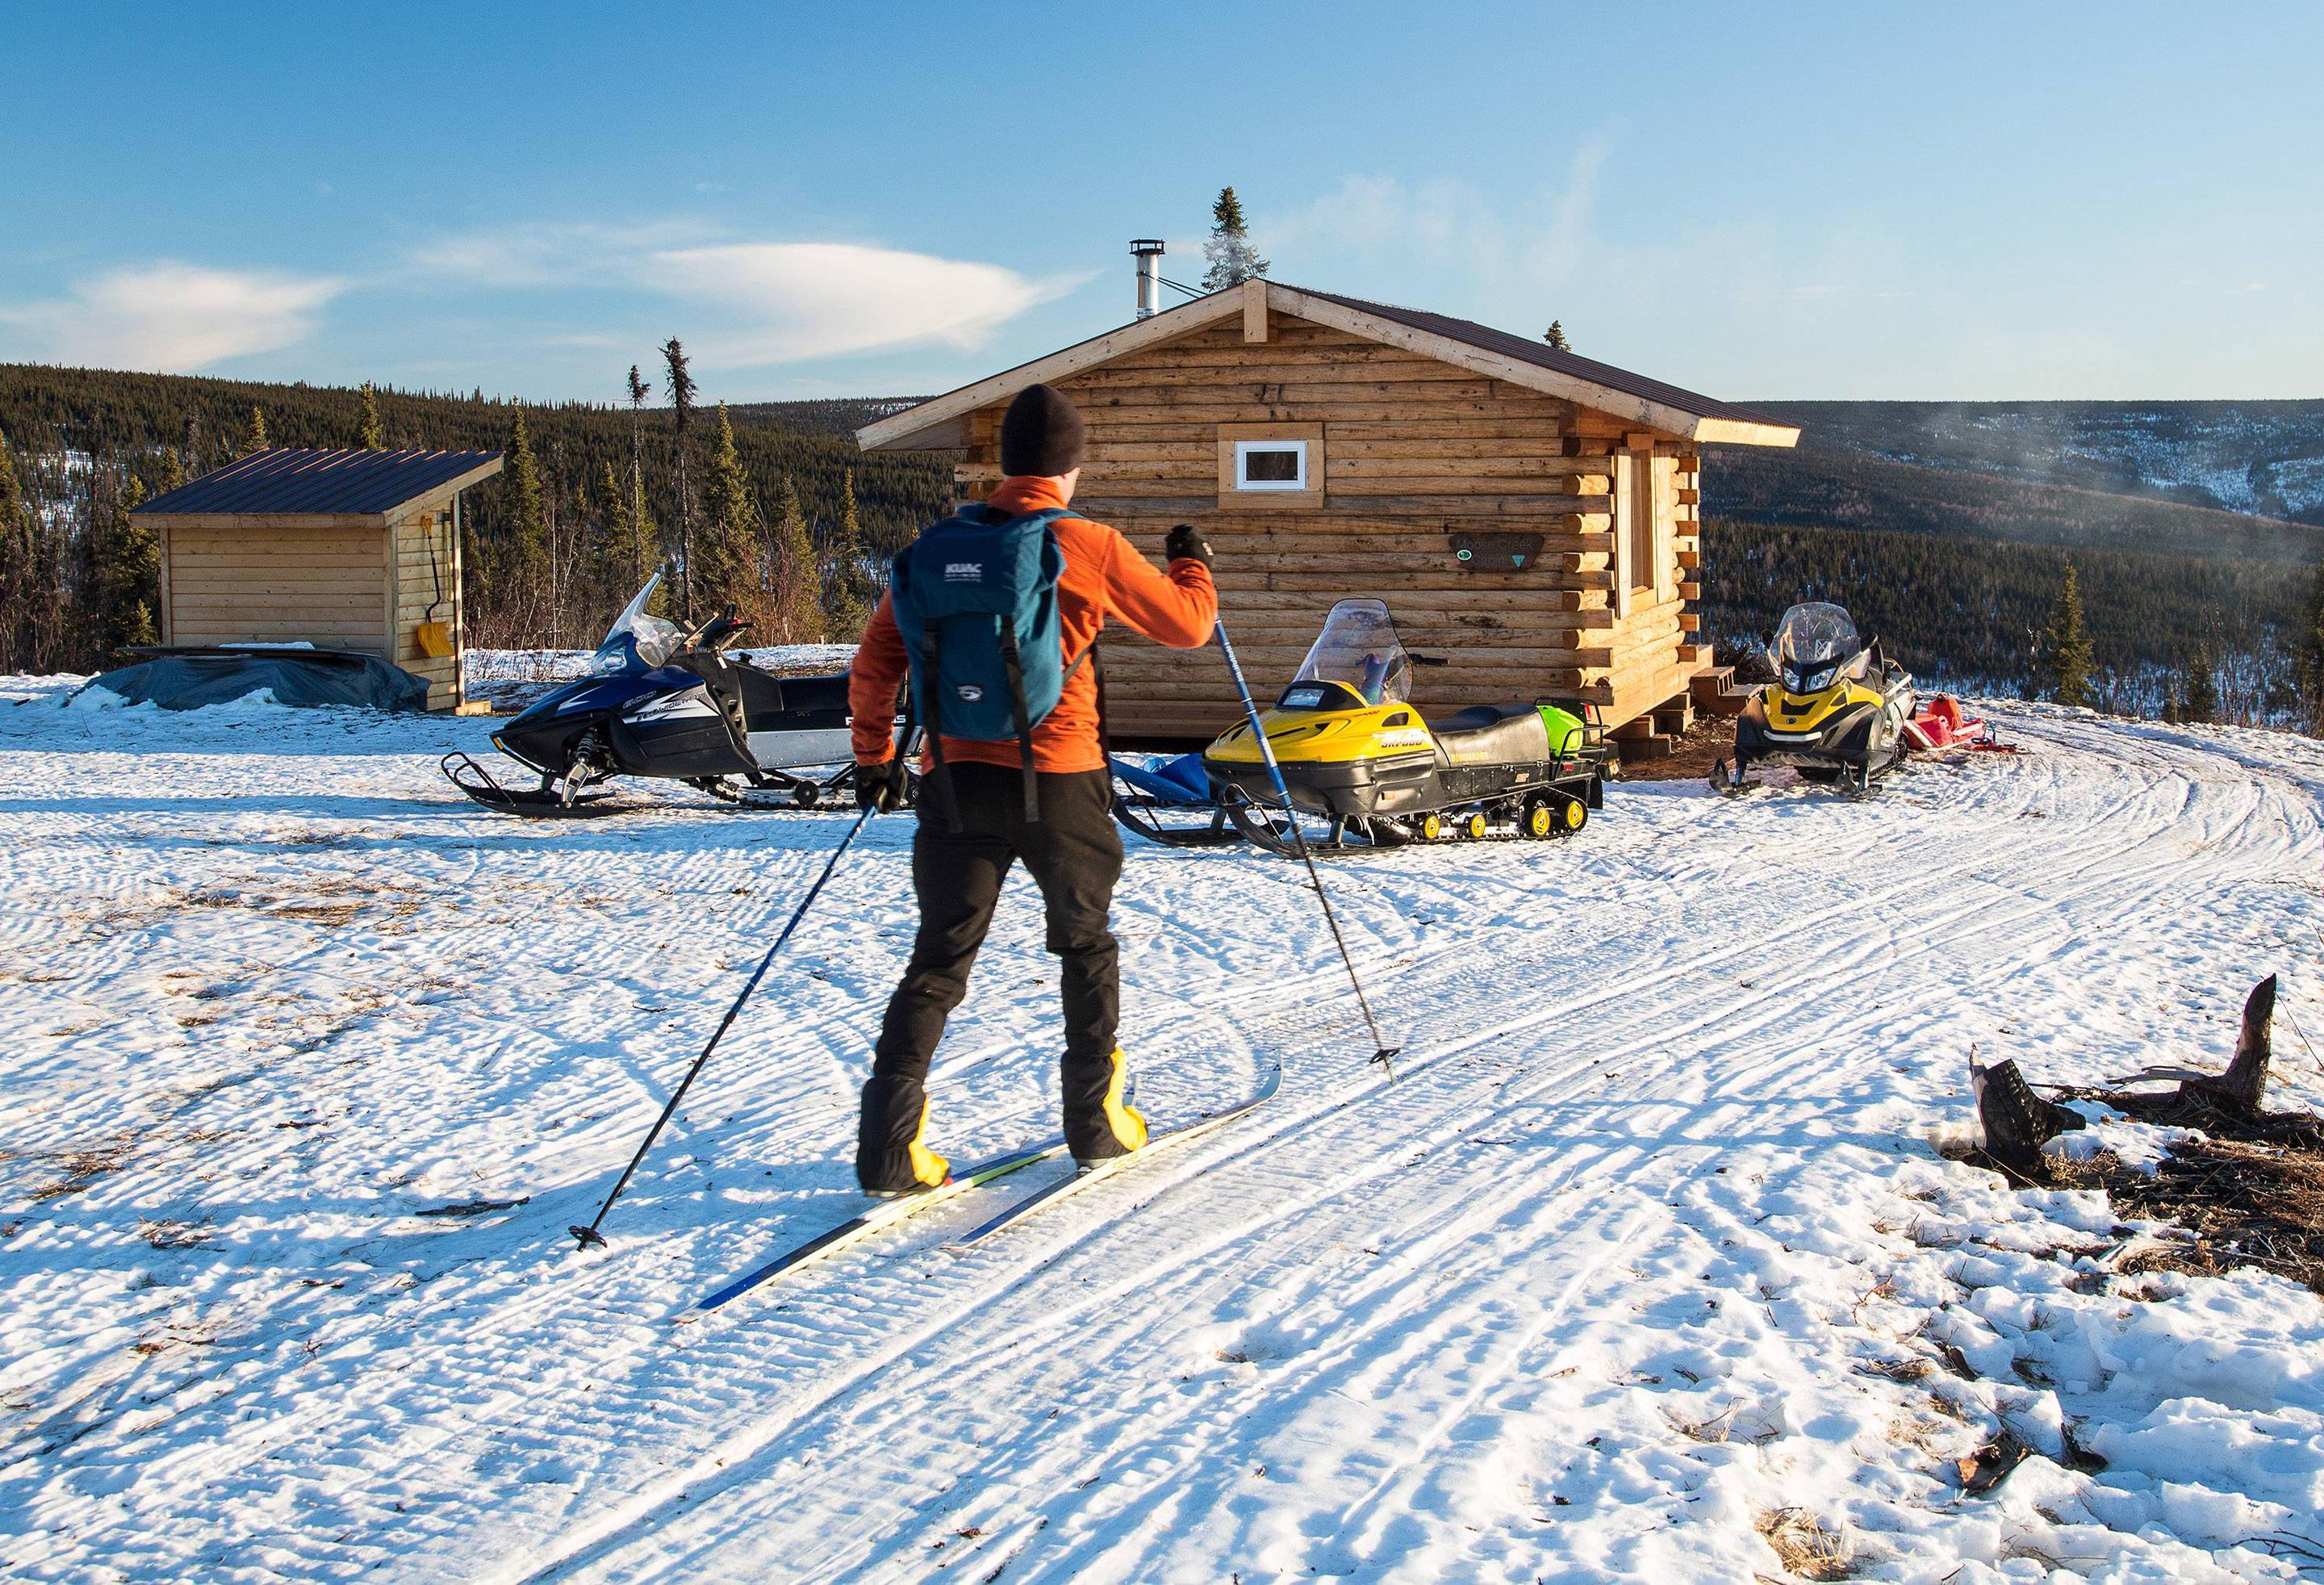 A man skies up to a log cabin surrounded by snowmobiles.Arriving at Moose Creek Cabin on skis.